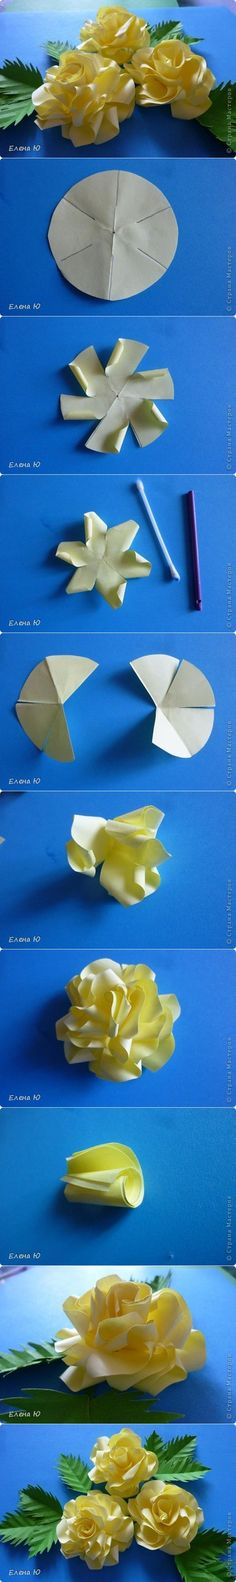 paper rose tutorial.. I like the curled edge http://www.fabartdiy.com/diy-simple-paper-rose/